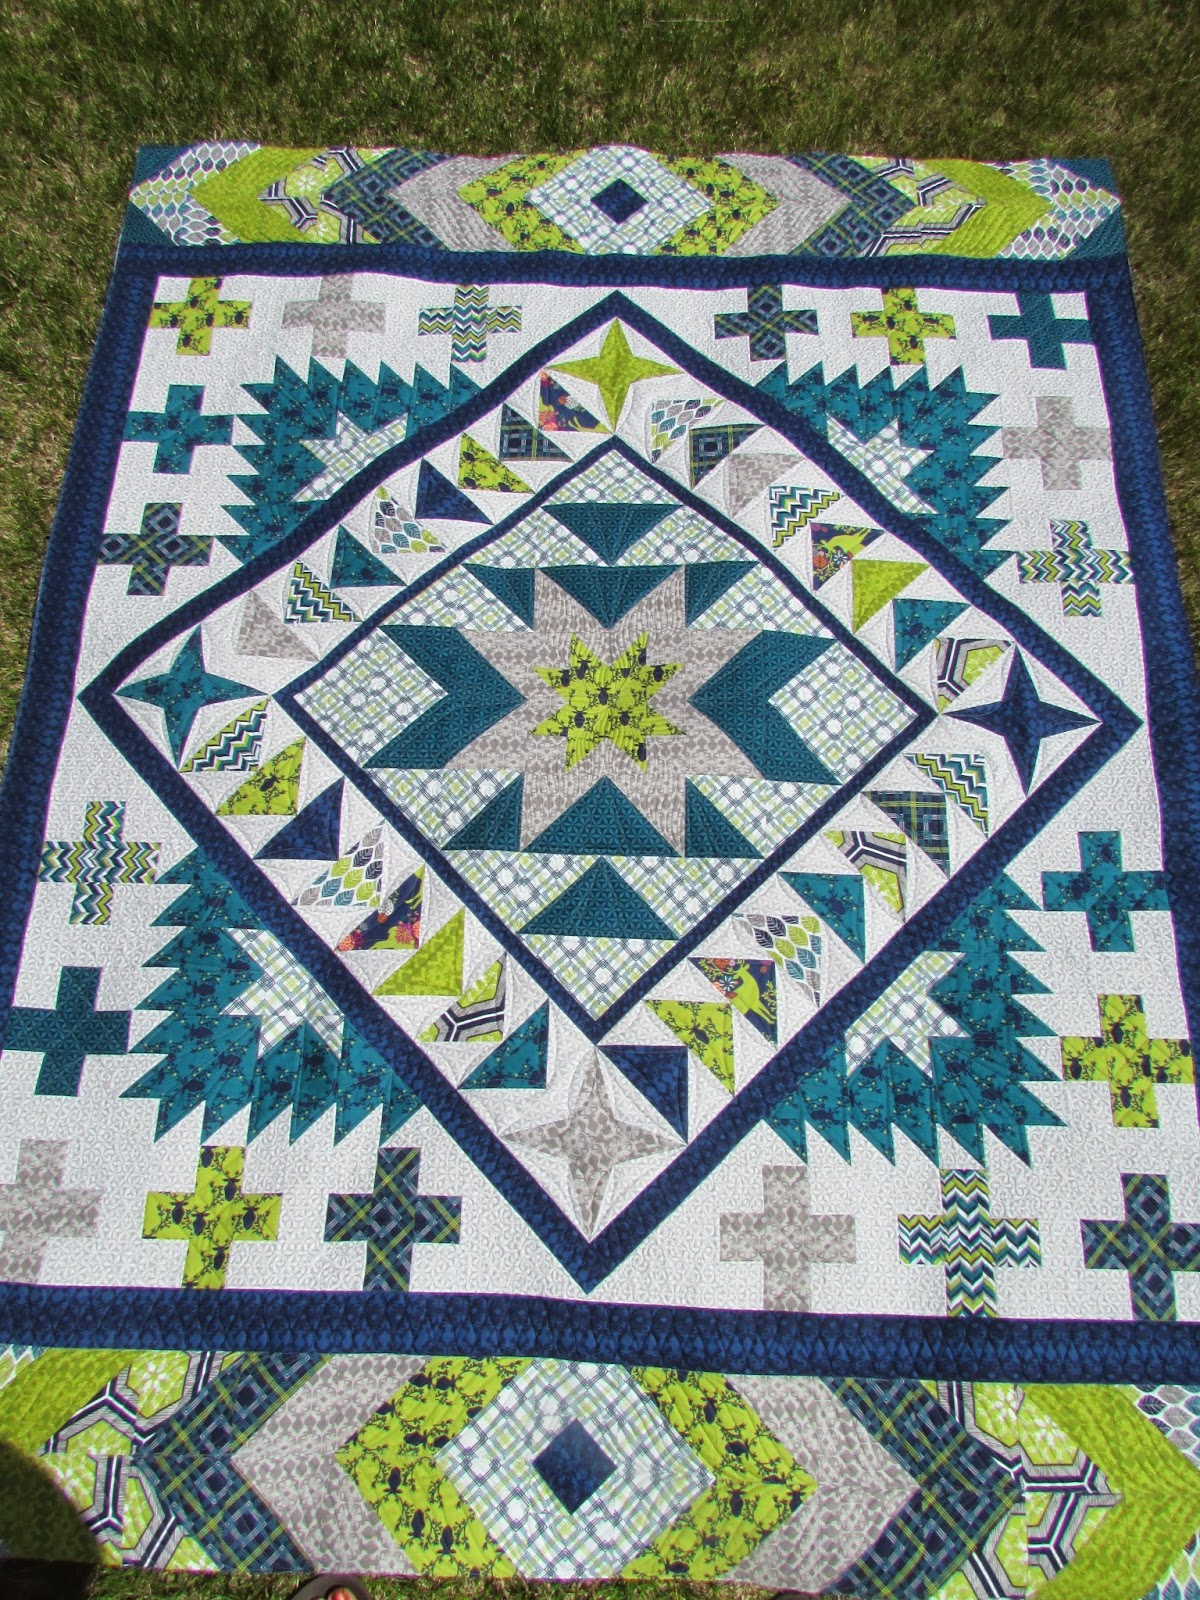 The Quilting Mill: Rustique Medallion Quilt by Emily Herrick : emily patchwork quilt - Adamdwight.com